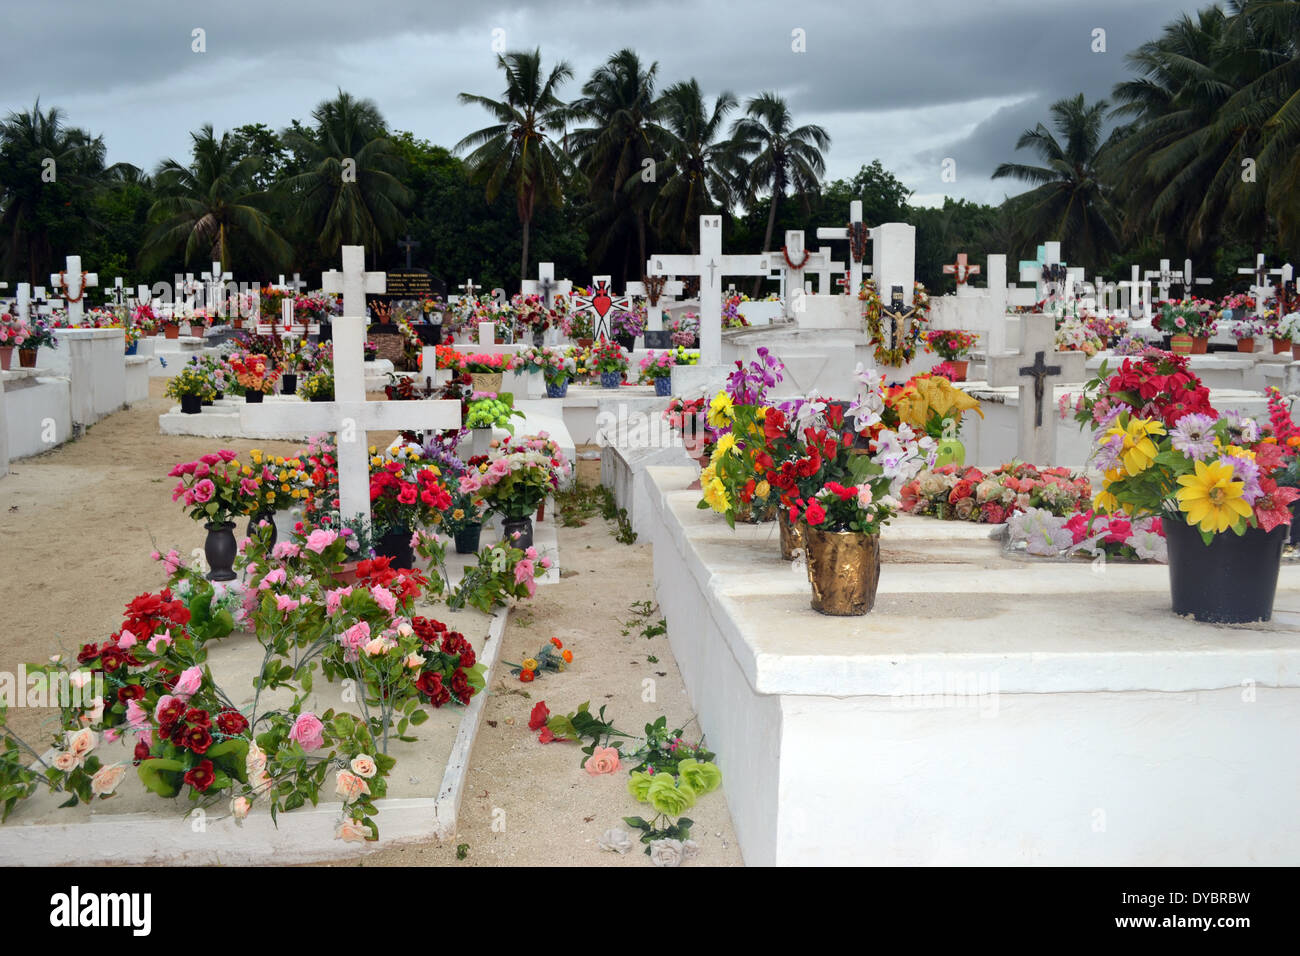 Cemetery covered with flowers, Matautu, Wallis Island, Wallis and Futuna, Melanesia, South Pacific - Stock Image